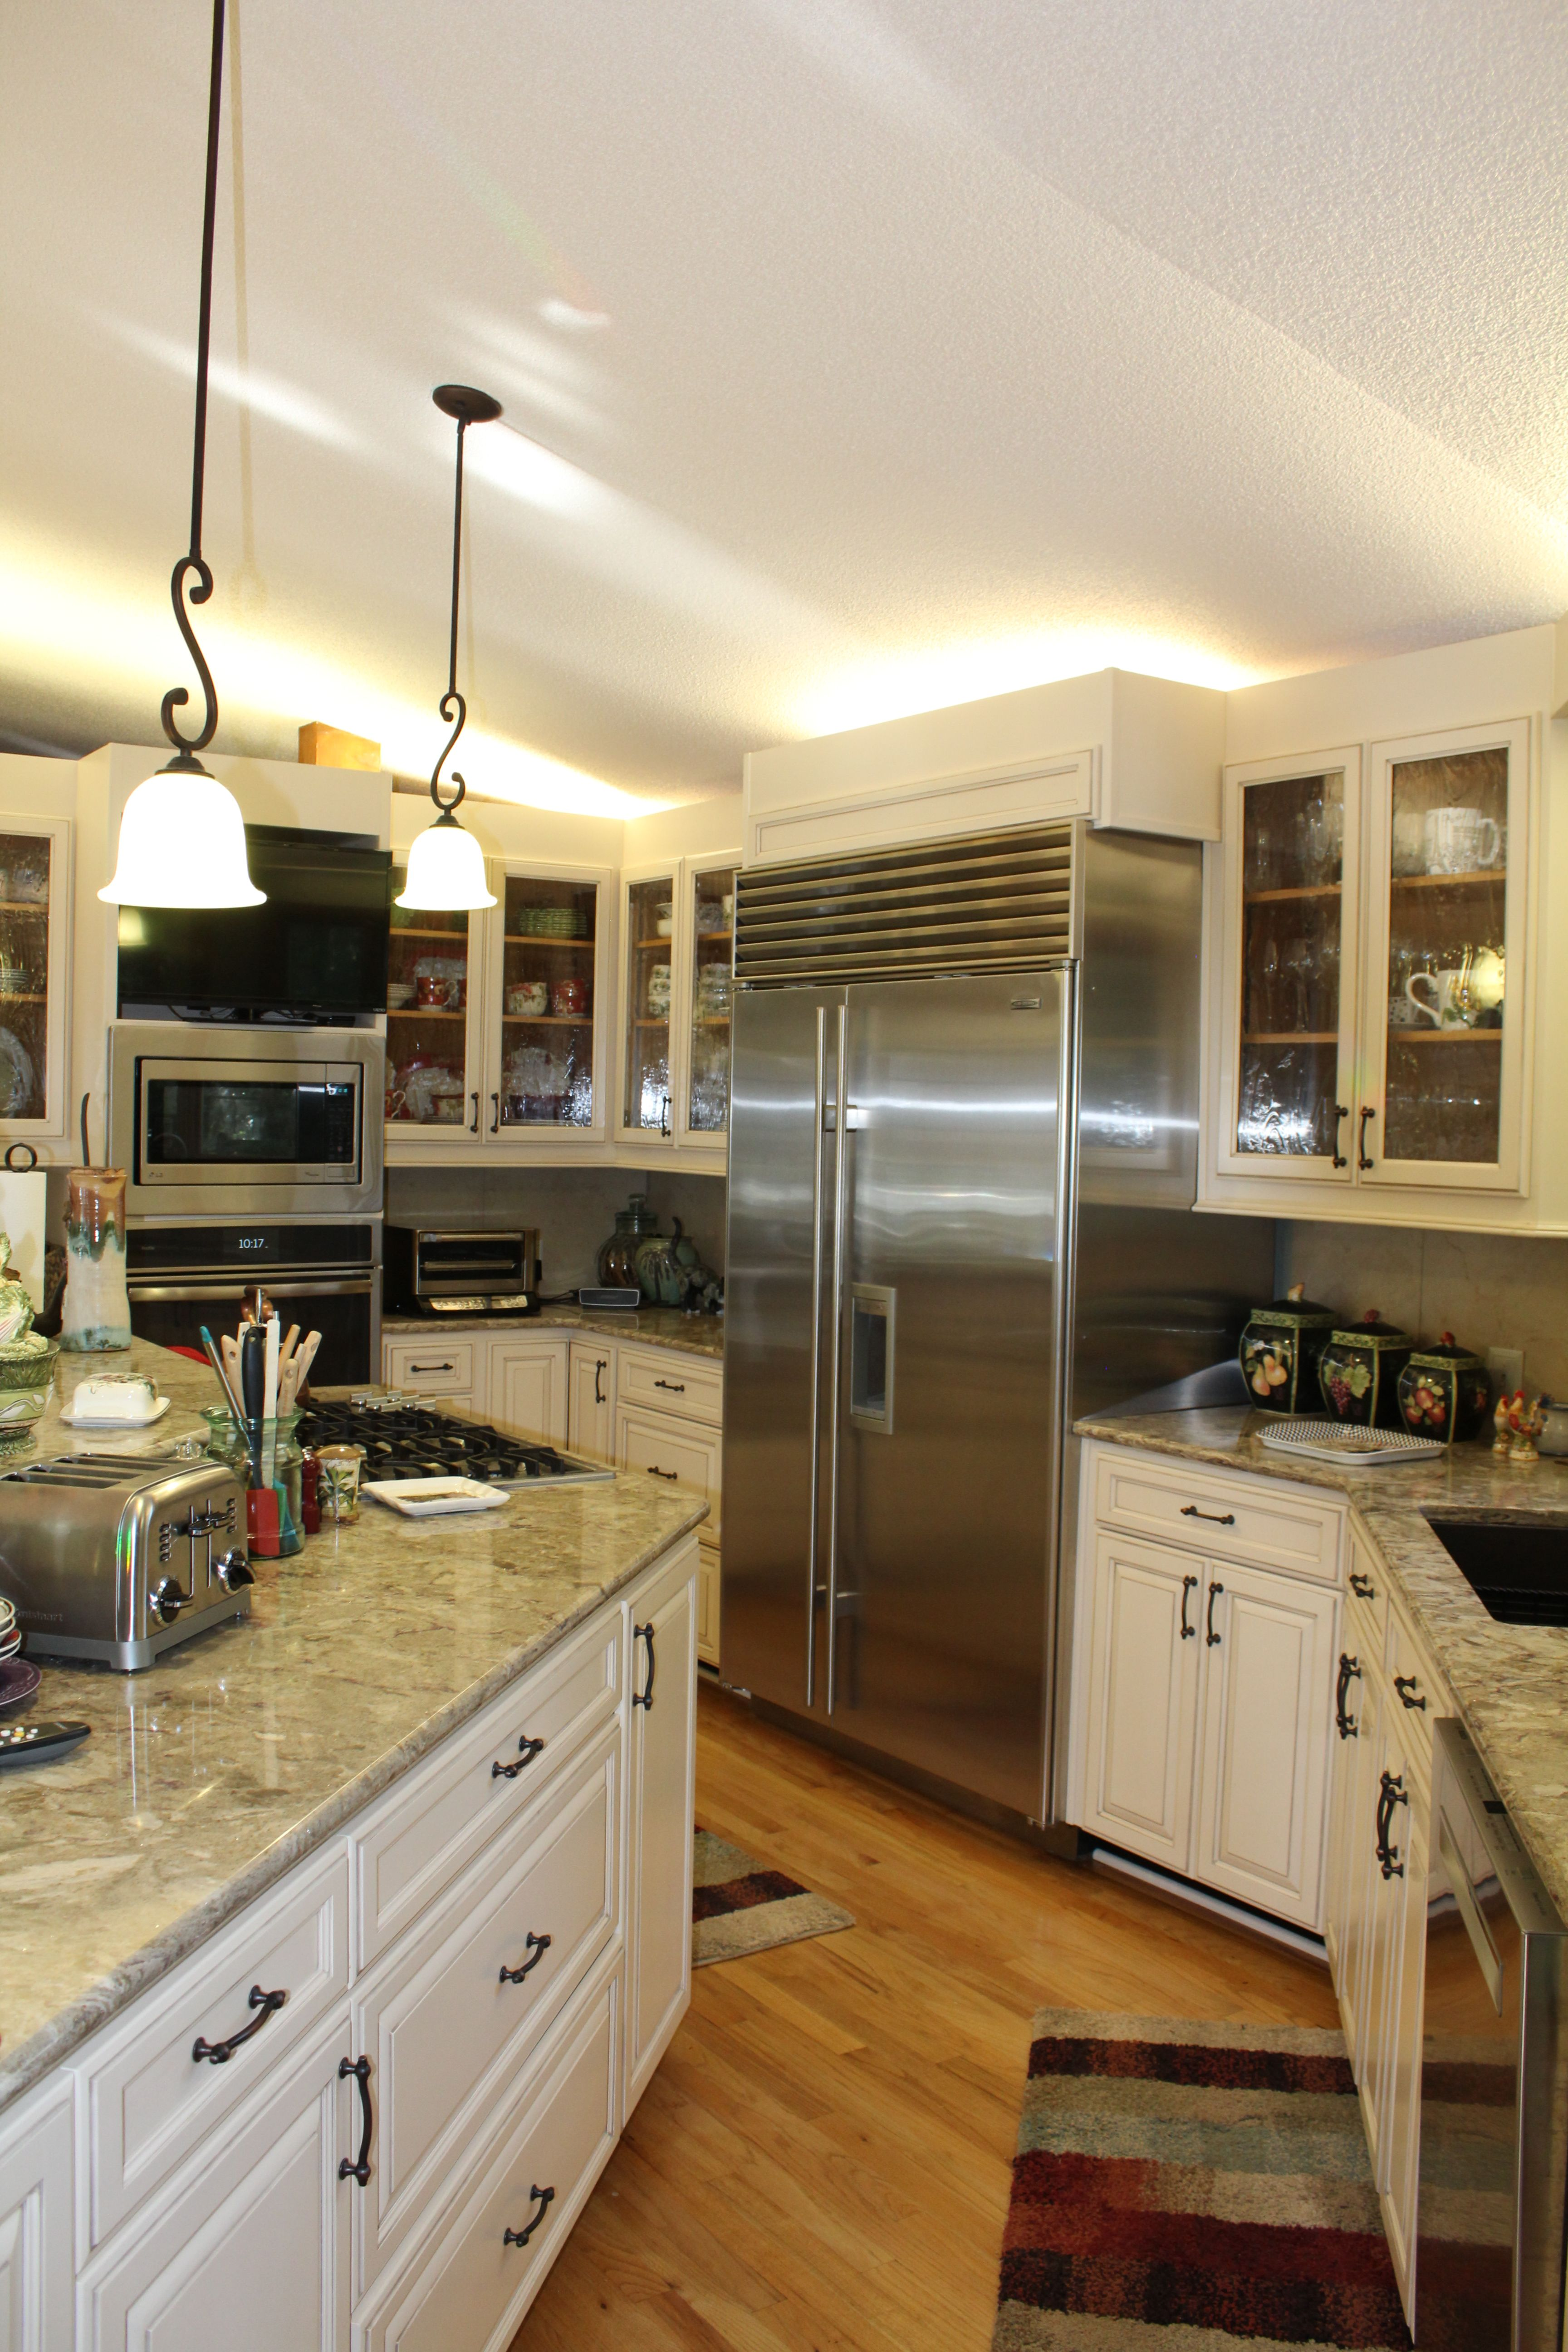 Pin By Mcmanus Kitchen And Bath On Mkb Traditional Kitchen Refacing Kitchen Refacing Traditional Kitchen Service Kitchen